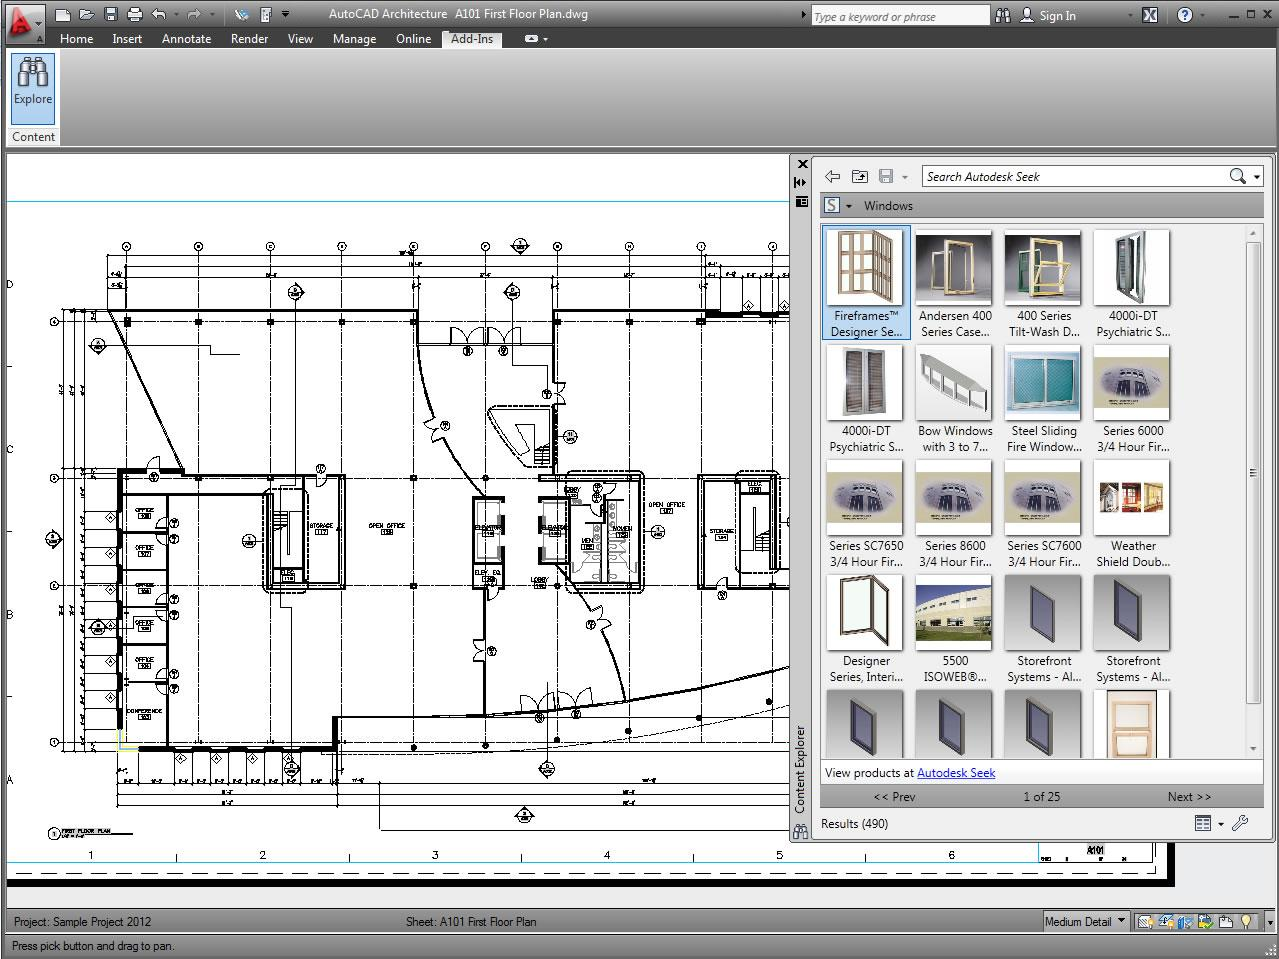 Autocad architecture 2012 jtb world for Online architecture design